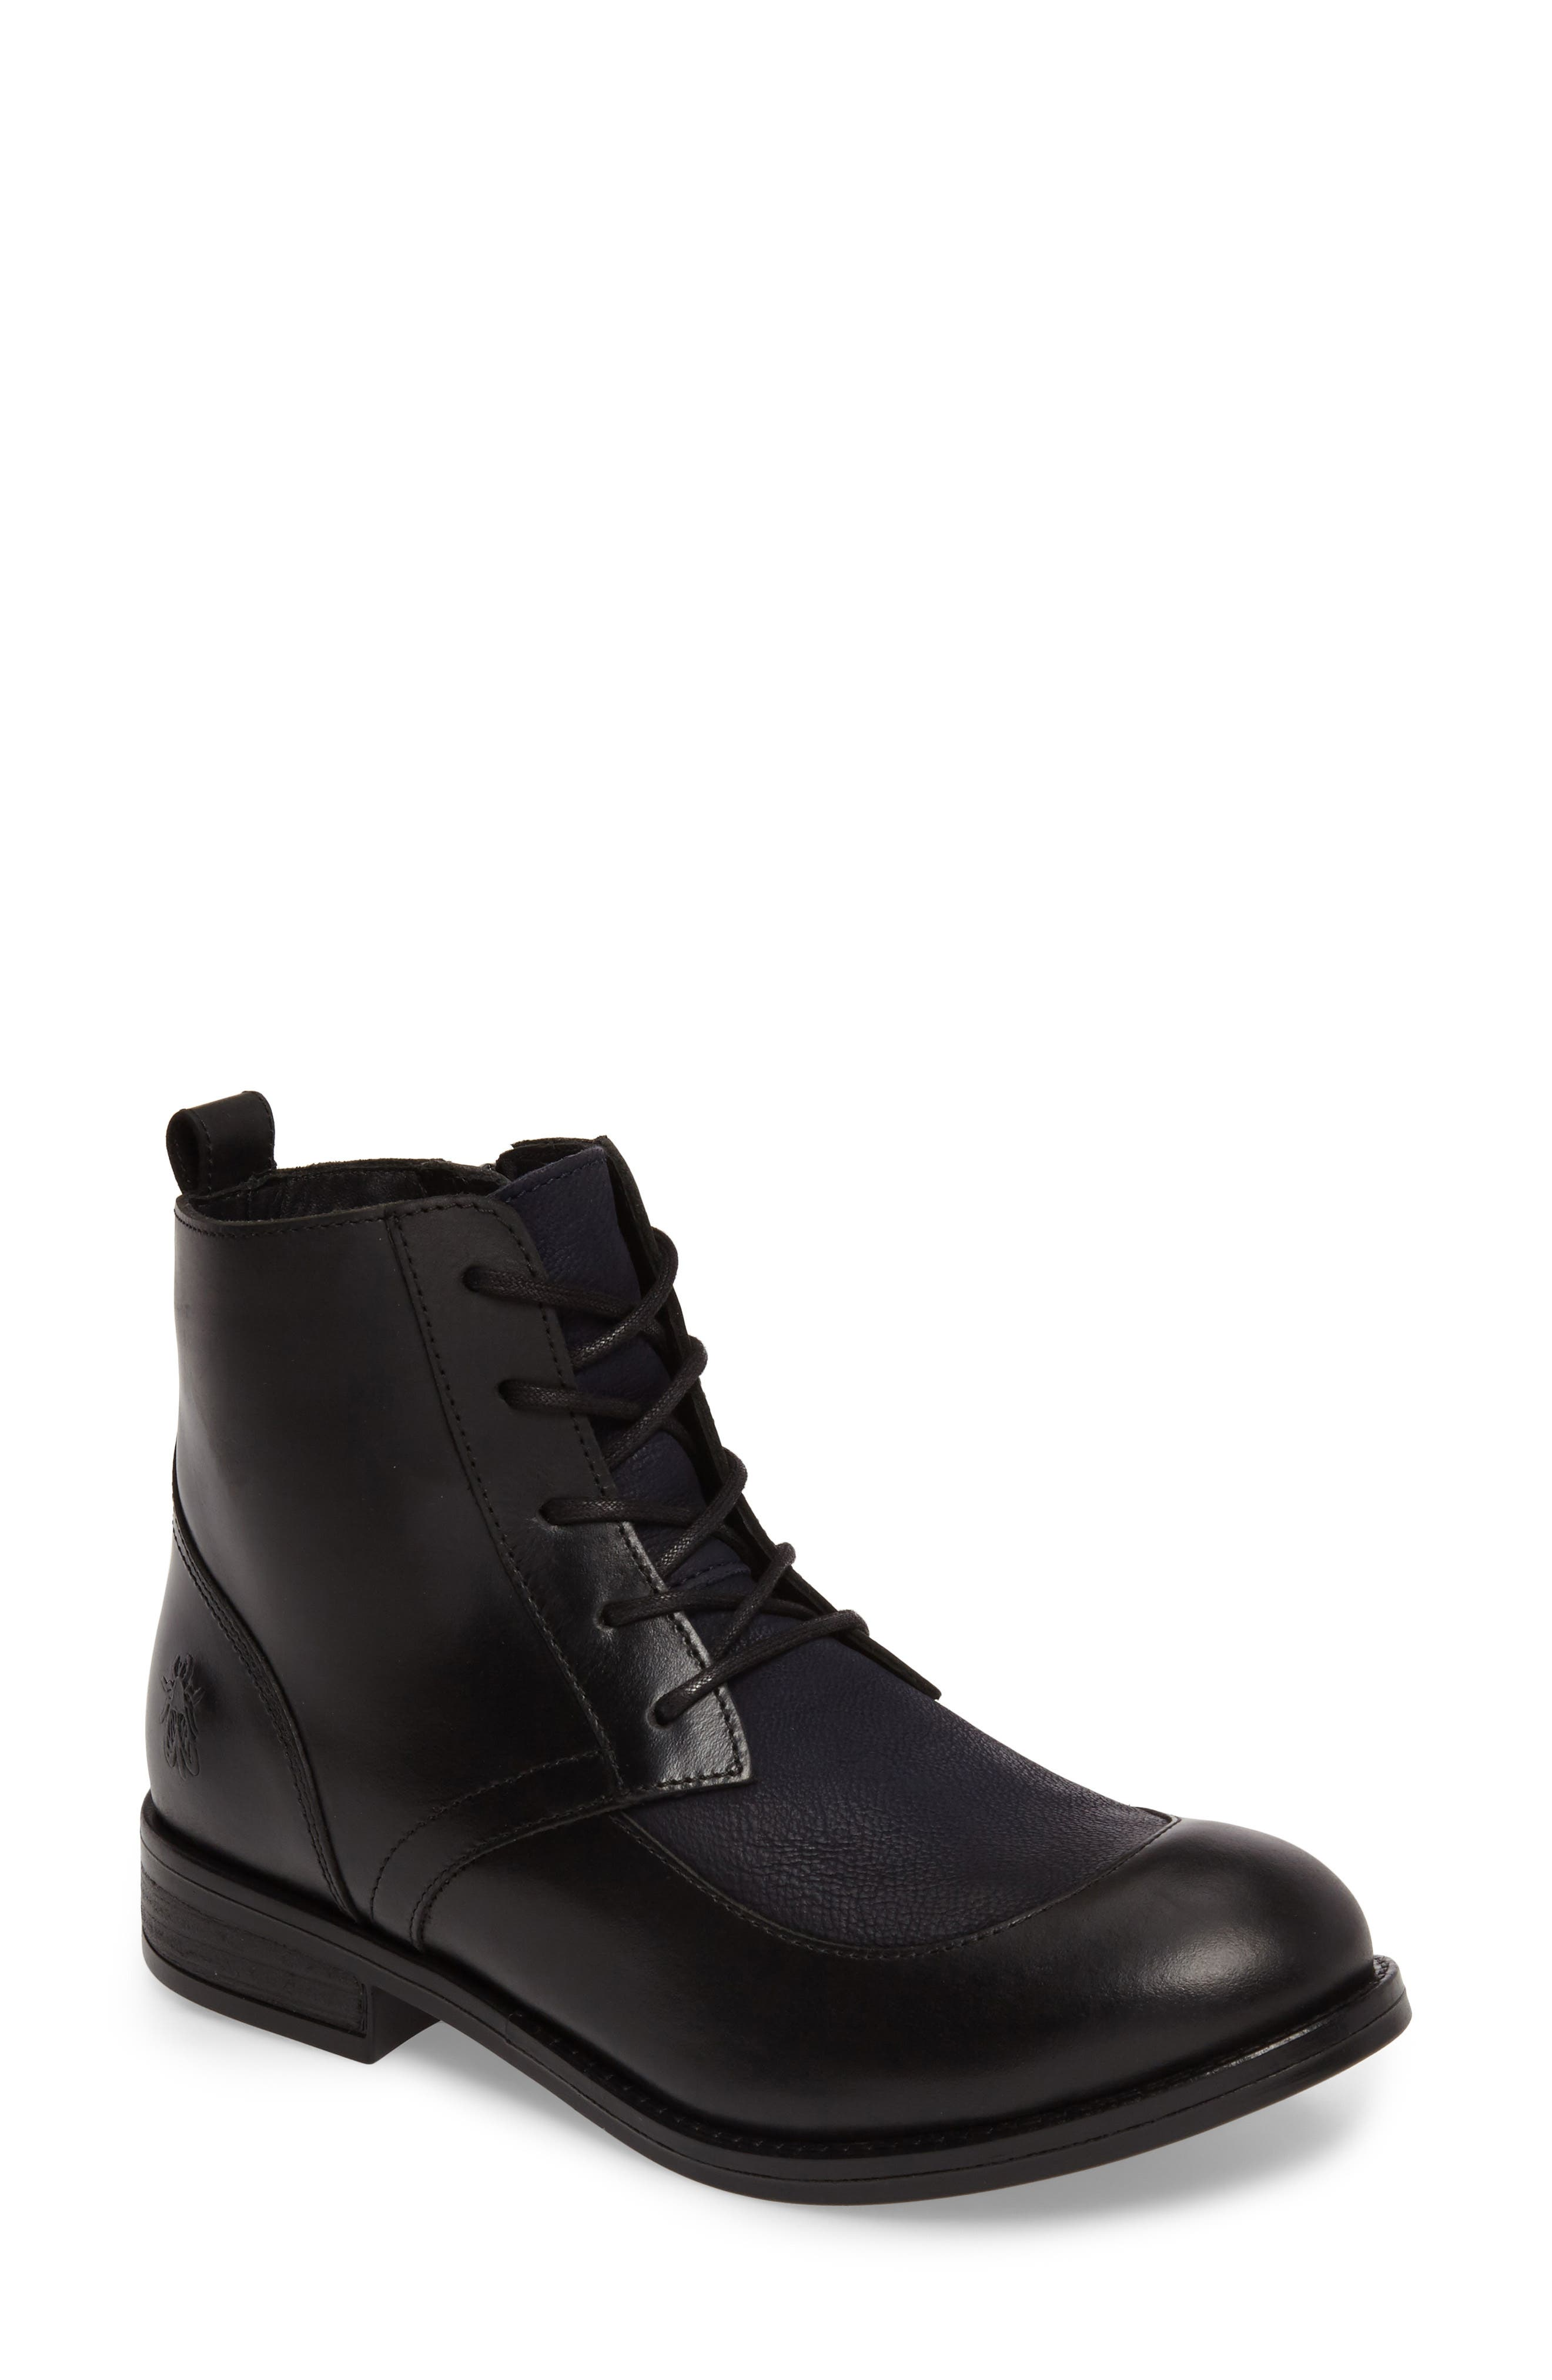 Arty Boot,                         Main,                         color, Black/ Ocean Leather